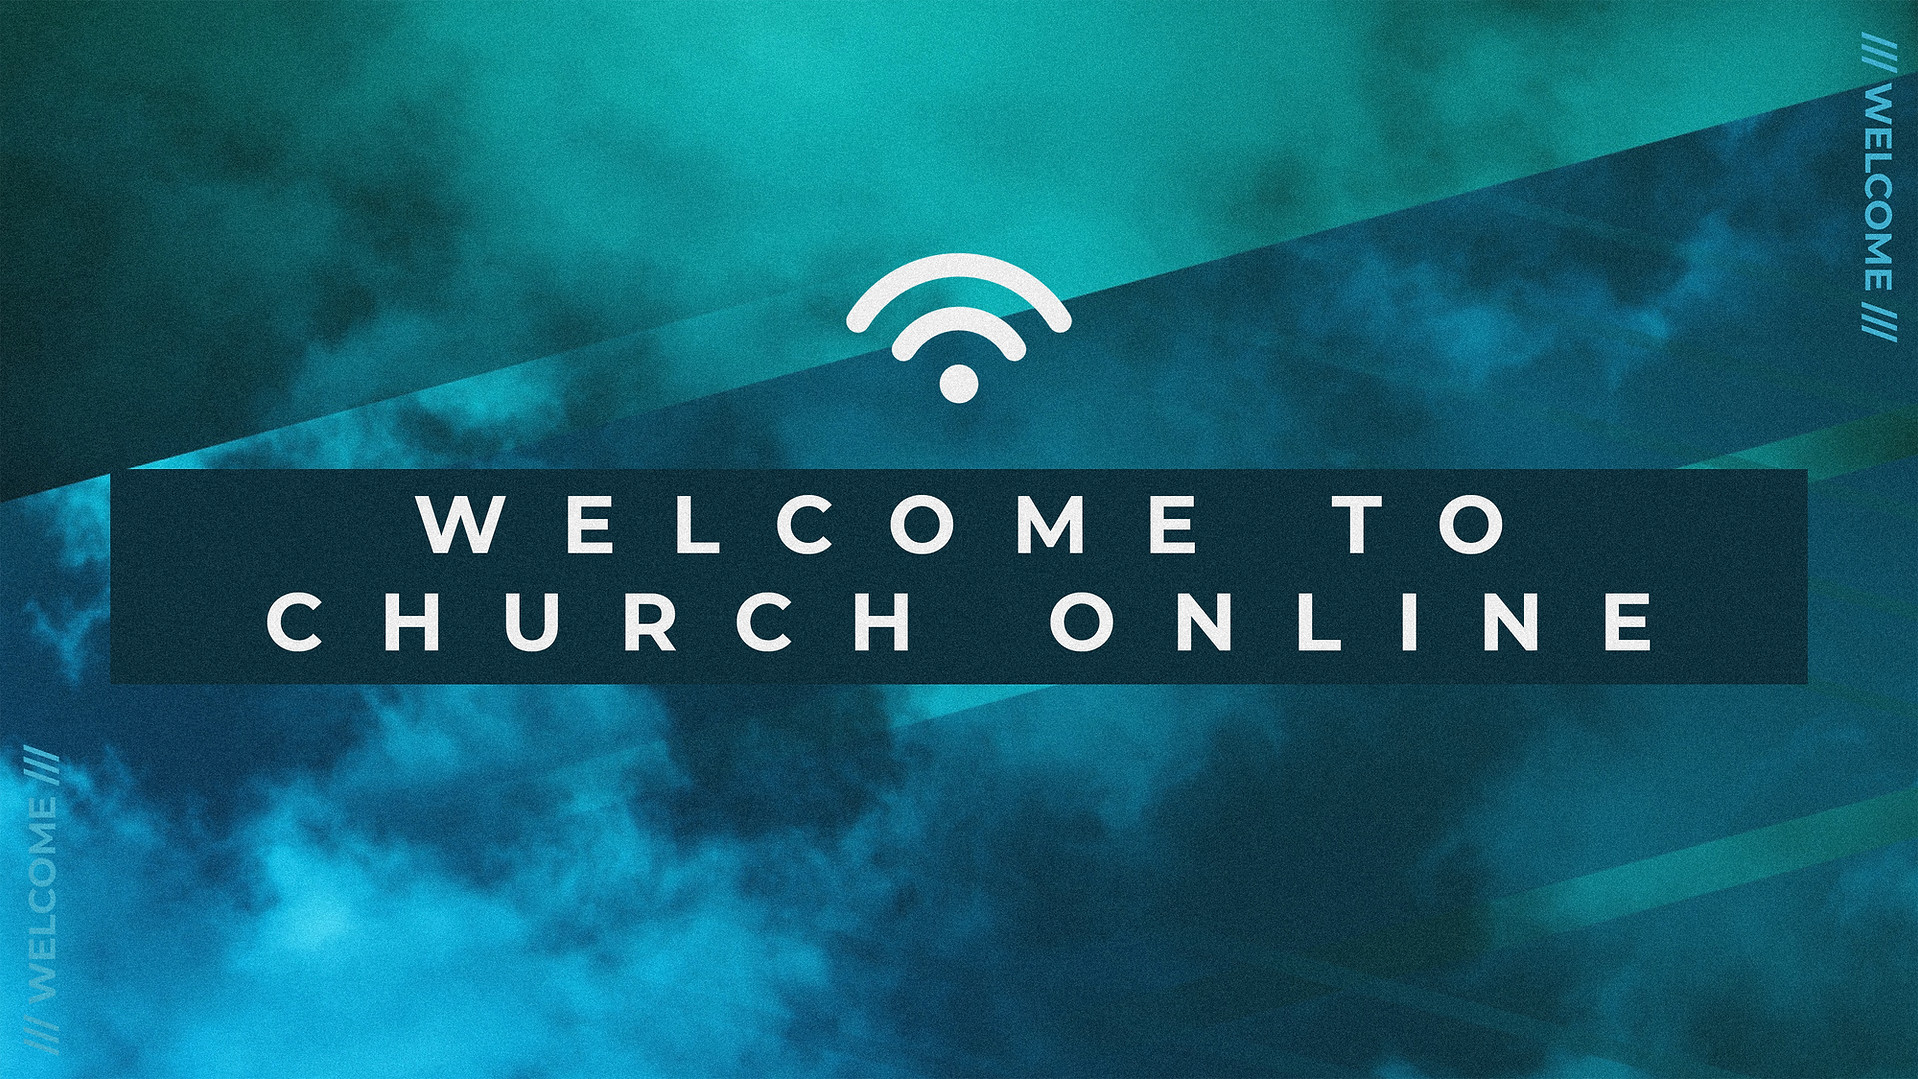 Sky Lines Welcome To Church Online - Title.jpg